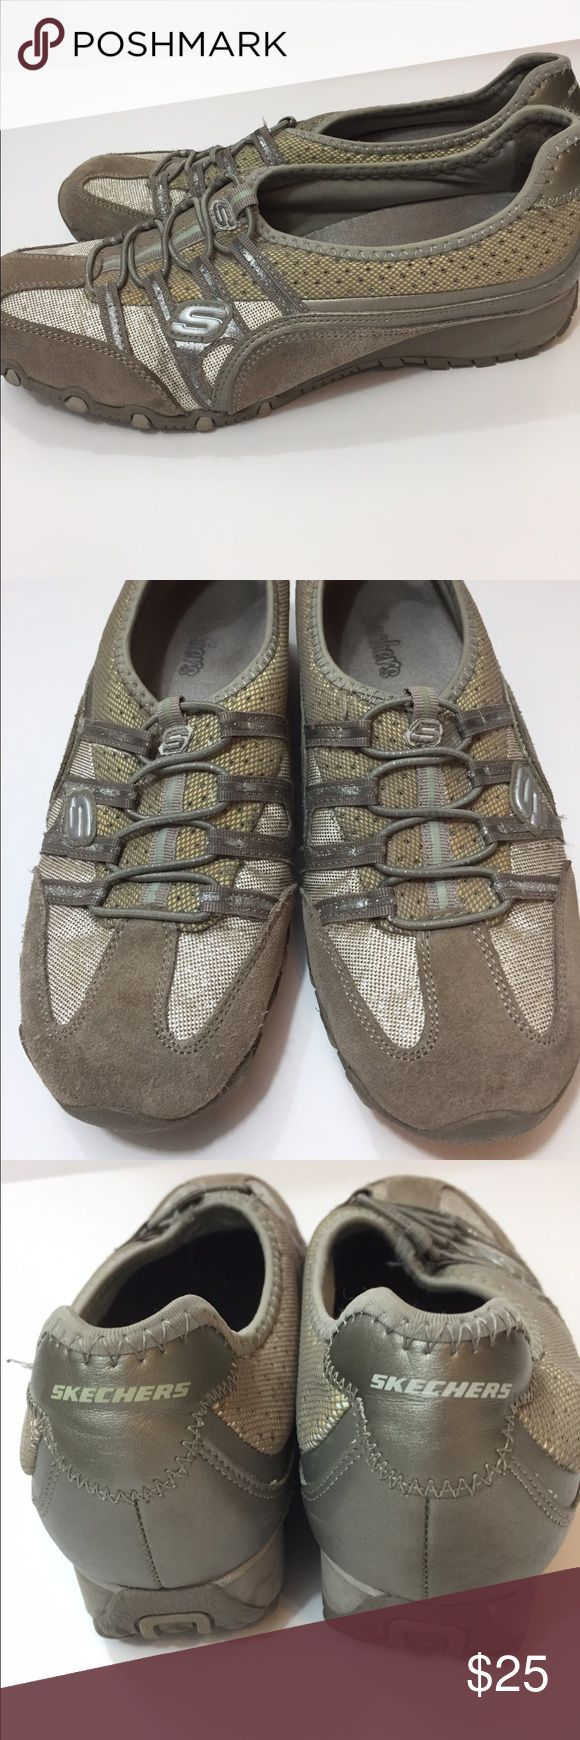 Skechers slip on shoes These shoes are tan with gold and silver. Not much wrong with them. Nice! True to size Skechers Shoes Sneakers